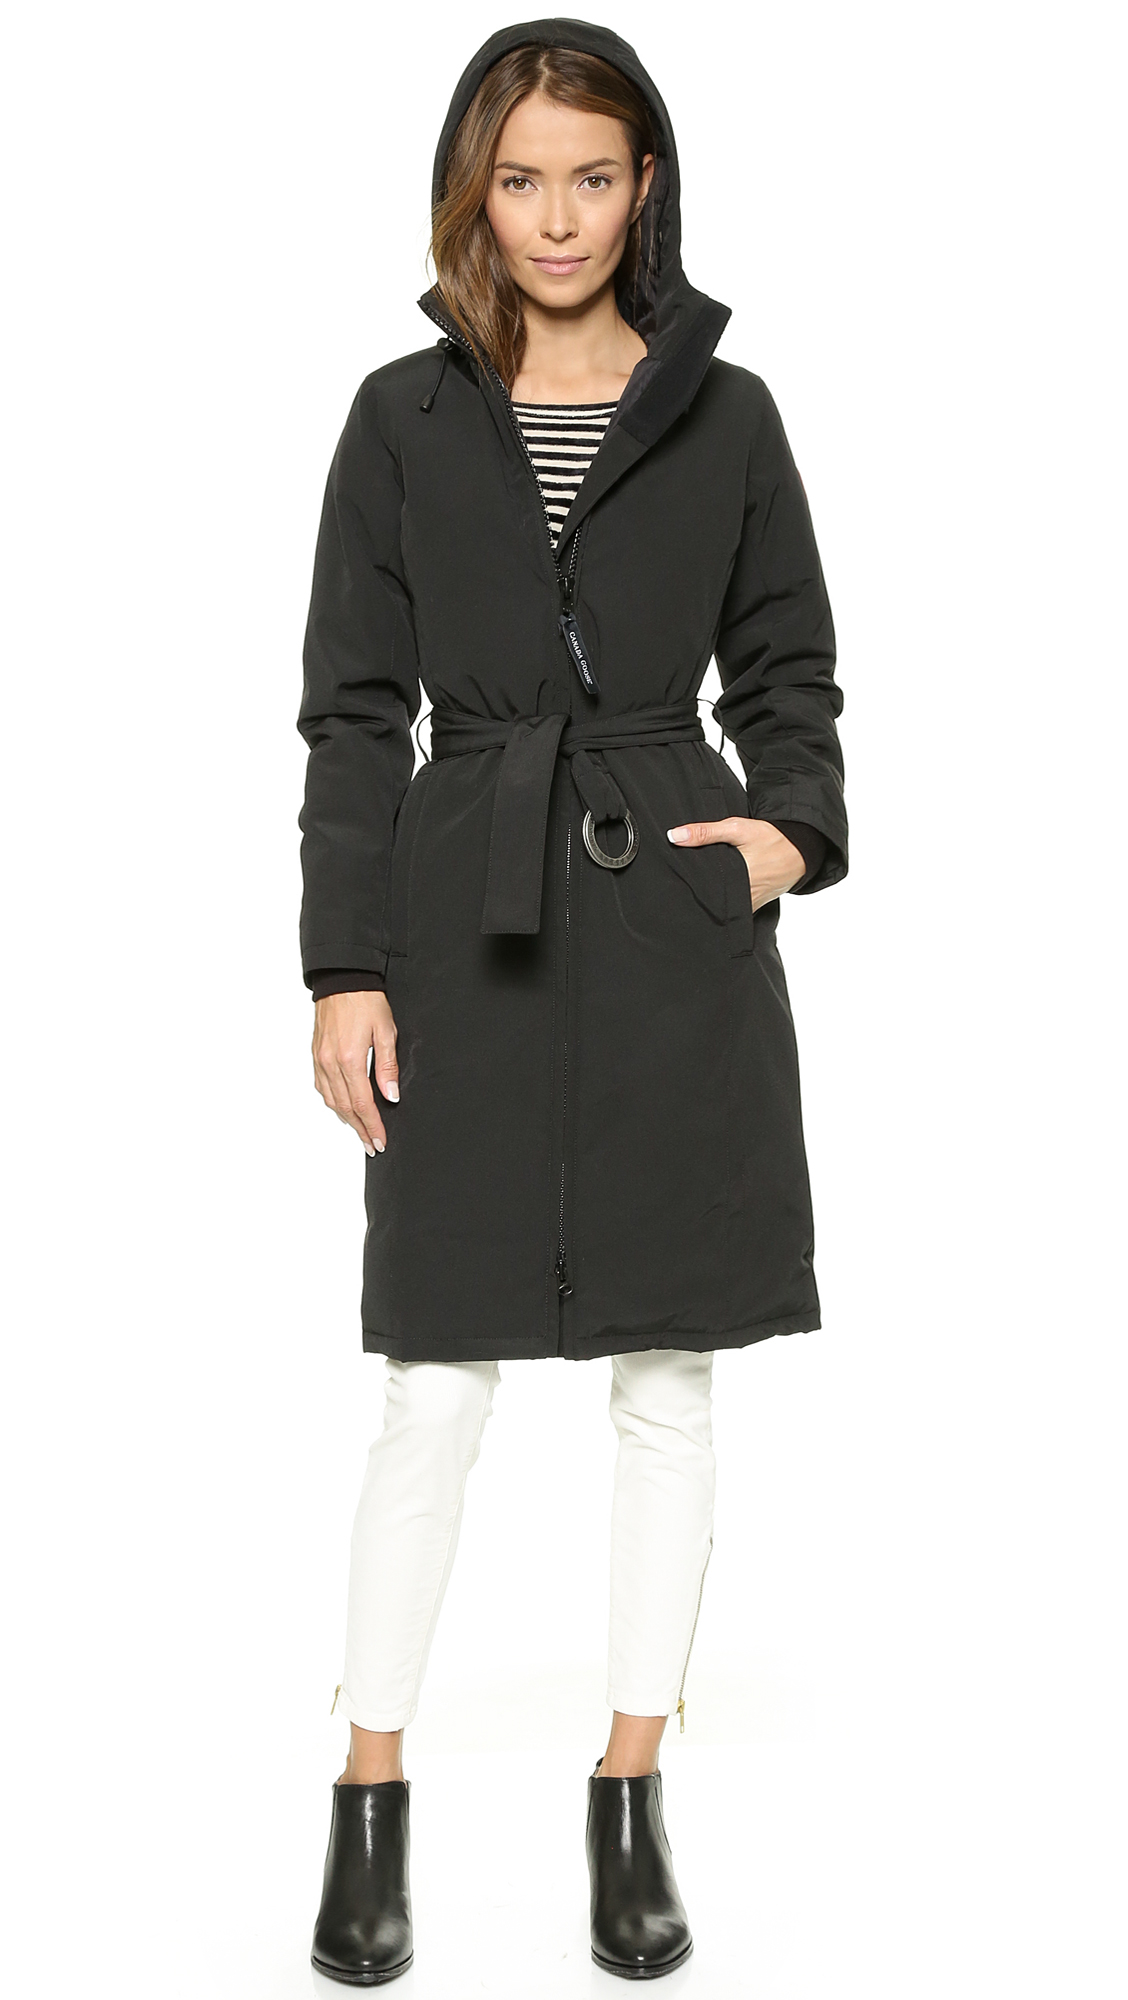 Canada Goose womens replica official - Canada Goose Whistler Parka | SHOPBOP